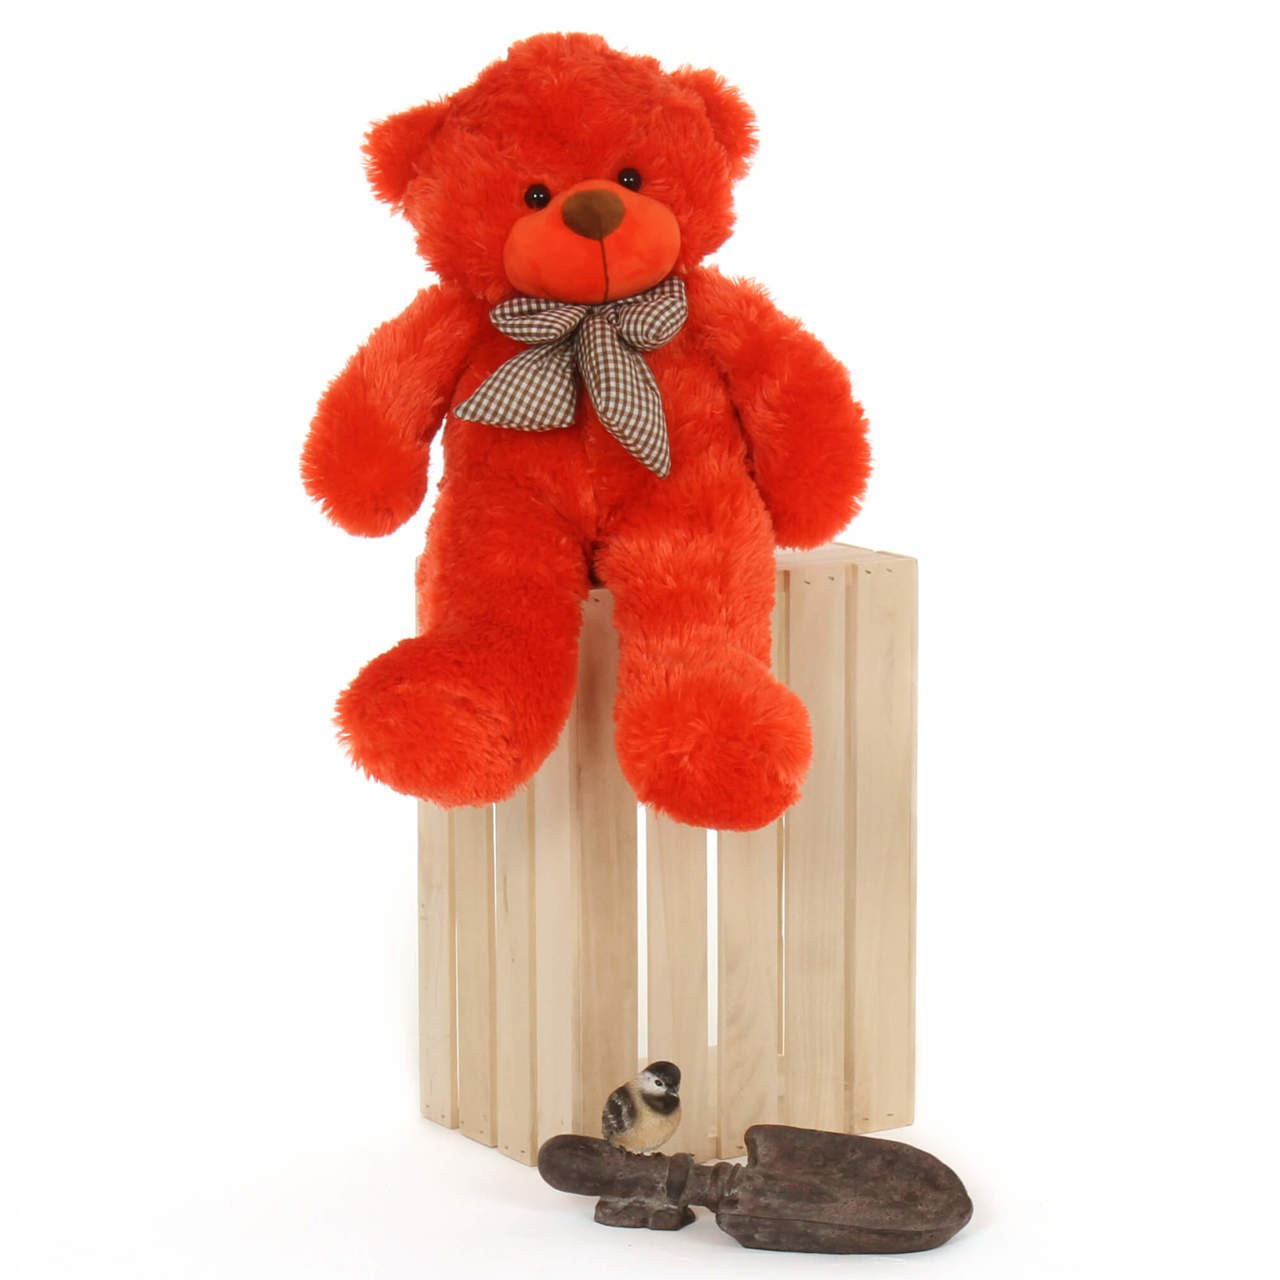 24in snuggly Teddy Bear brown nose and  Huggable soft body Lovey Cuddles bright Orange Red Fur